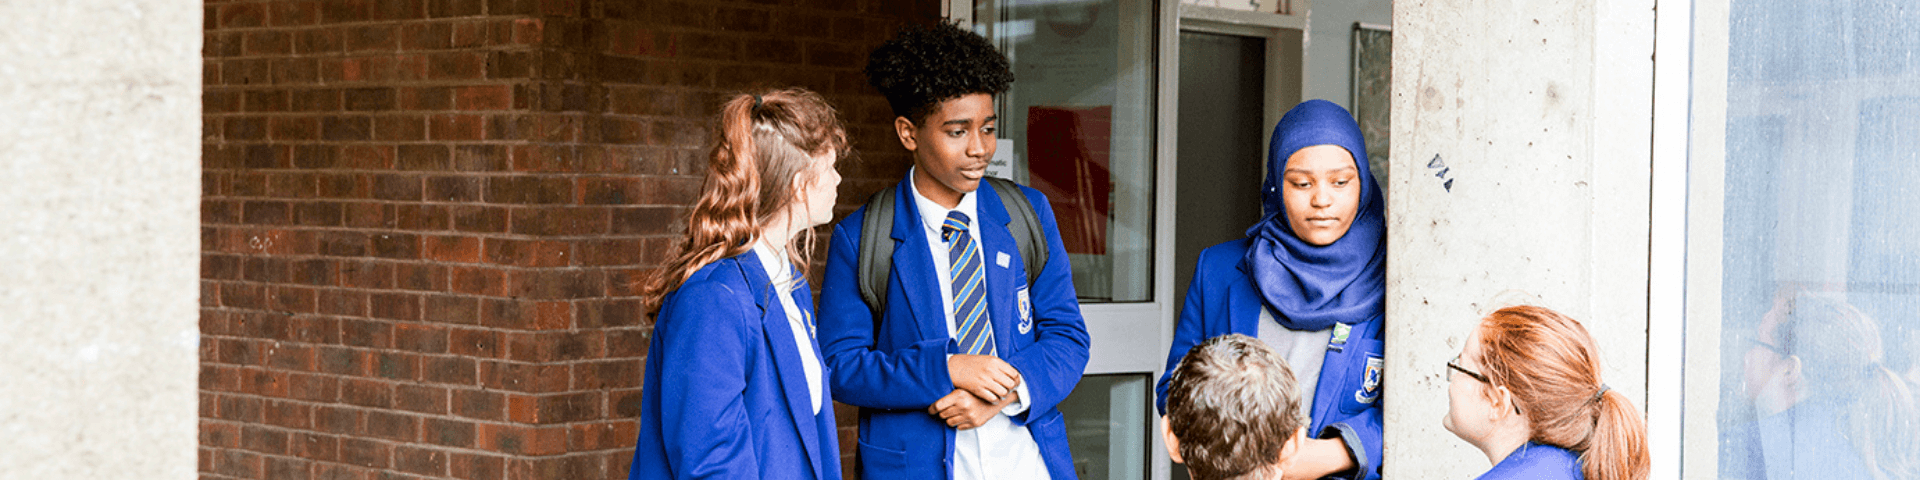 Group of young people outside a school